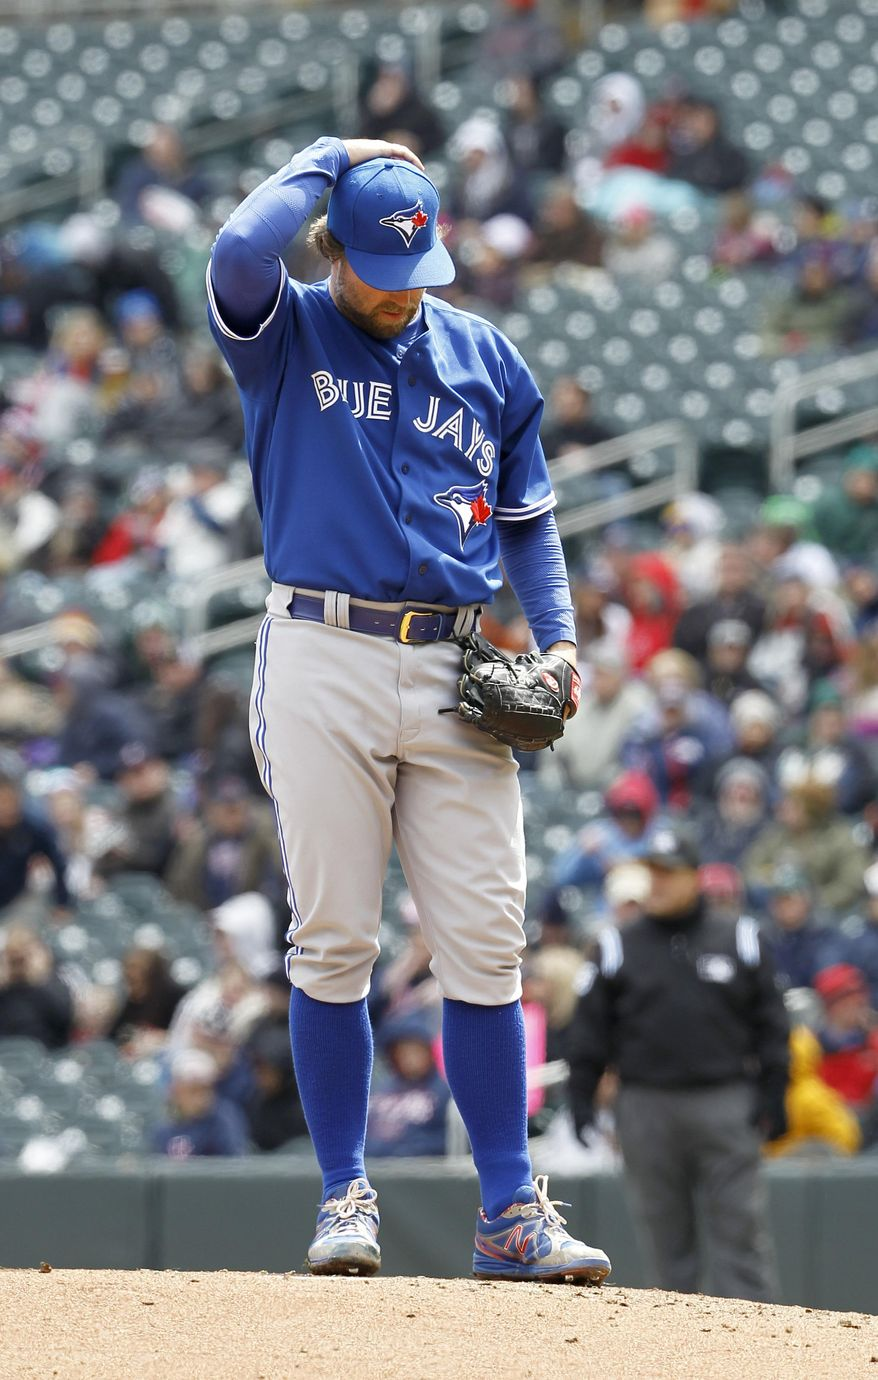 Toronto Blue Jays starting pitcher R.A. Dickey reacts after walking Minnesota Twins' Chris Colabello during the fifth inning of the first baseball game of a doubleheader in Minneapolis, Thursday, April 17, 2014. The Twins won 7-0. (AP Photo/Ann Heisenfelt)